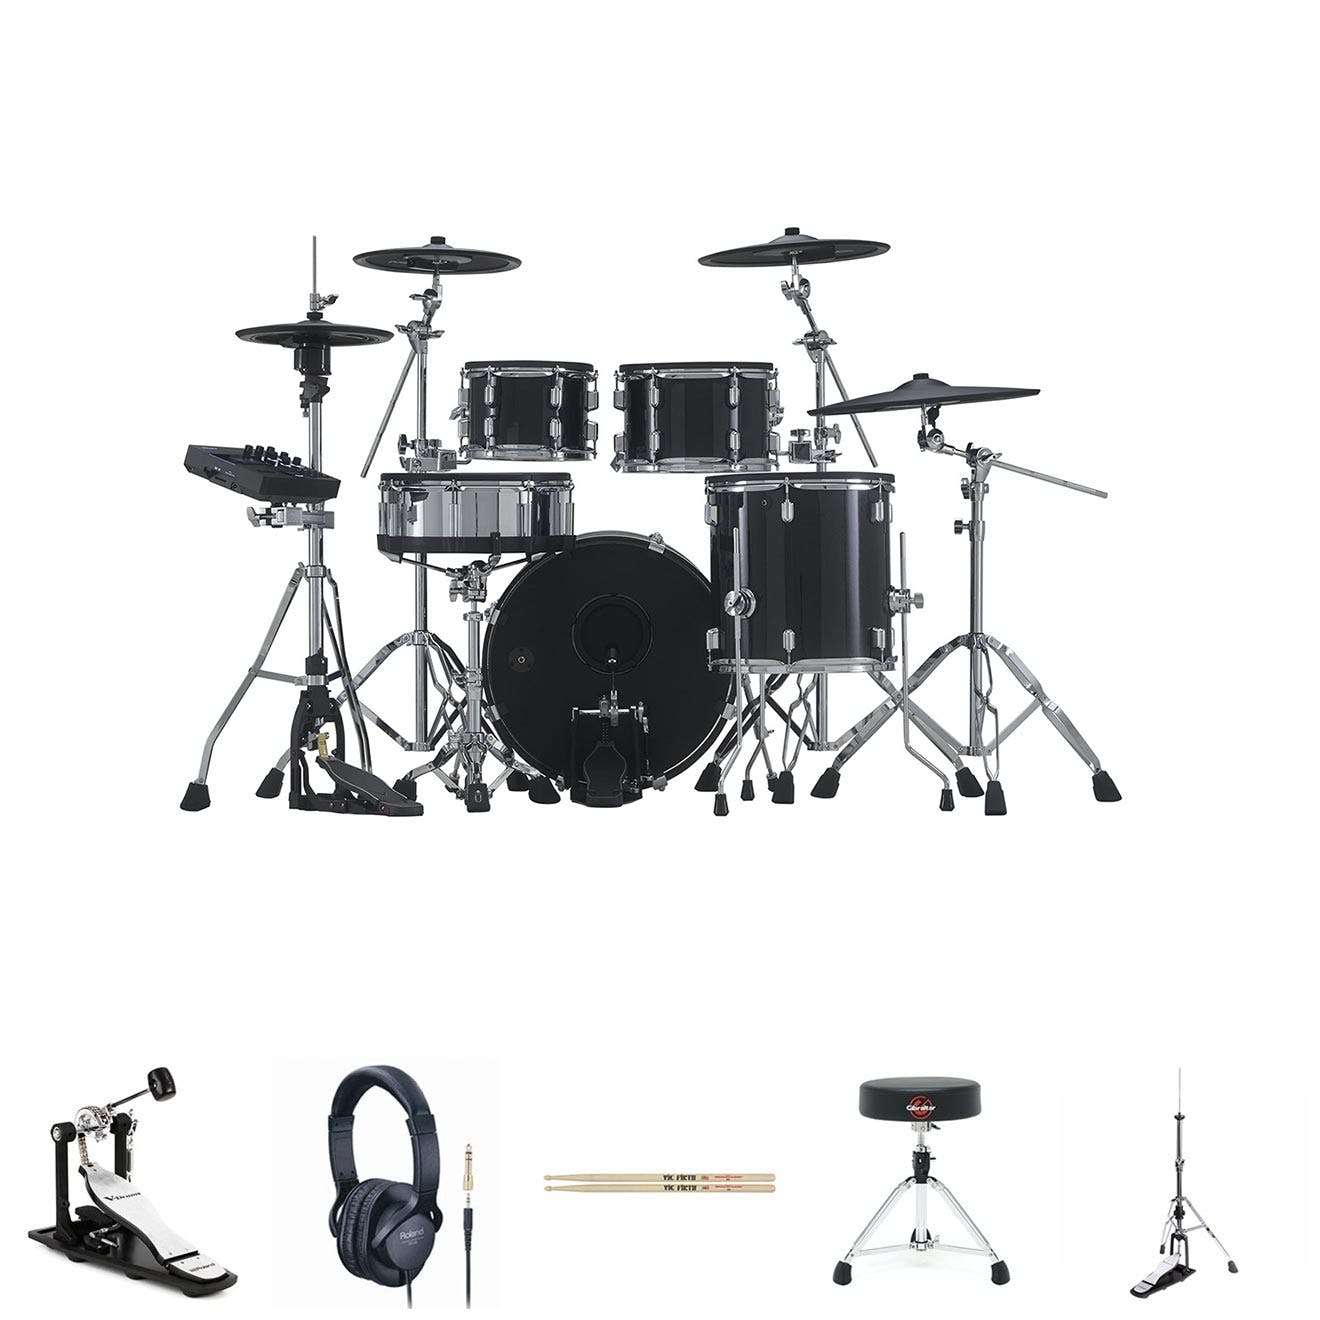 Image for Roland VAD506 w/ Single Pedal, HH Stand, Snare Stand, Sticks, Stool & Headphones from Andertons Music Co.